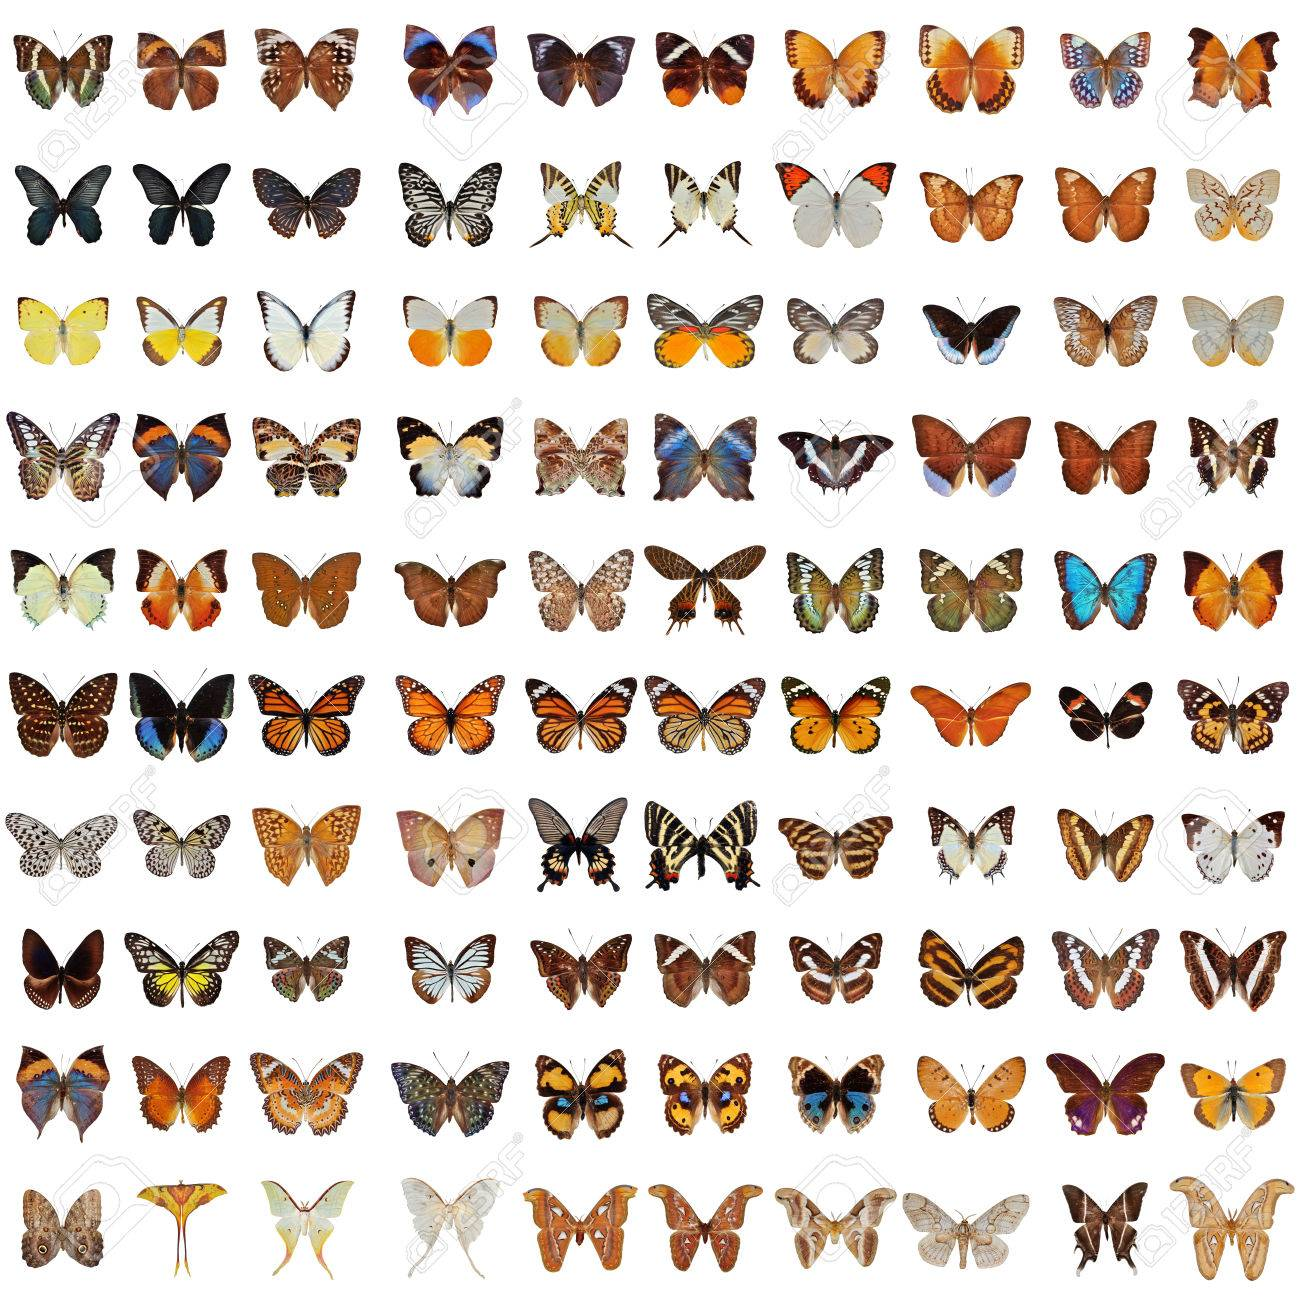 Collection of 100 butterfly and moth isolated on white background - 48563039